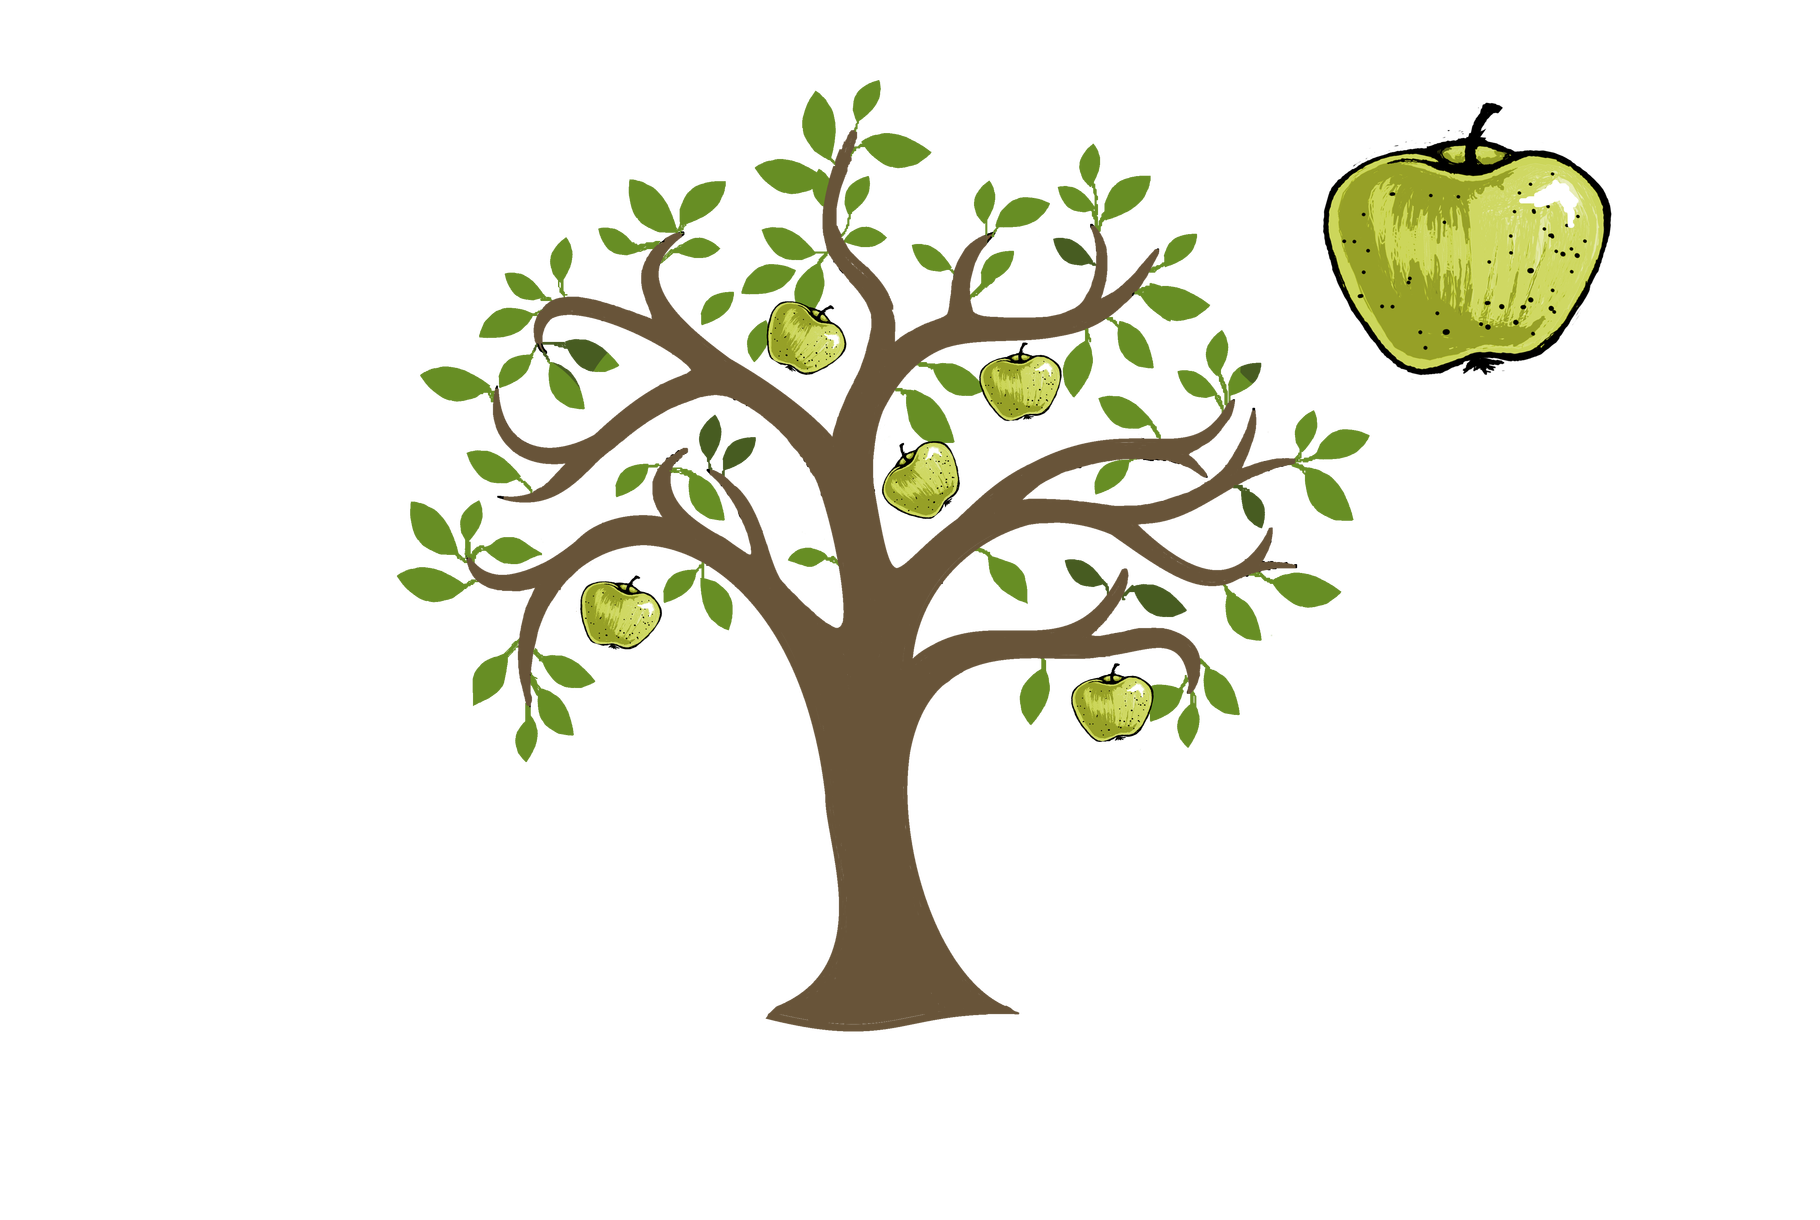 Game topic - traditional orchard - orchard or traditional orchard?